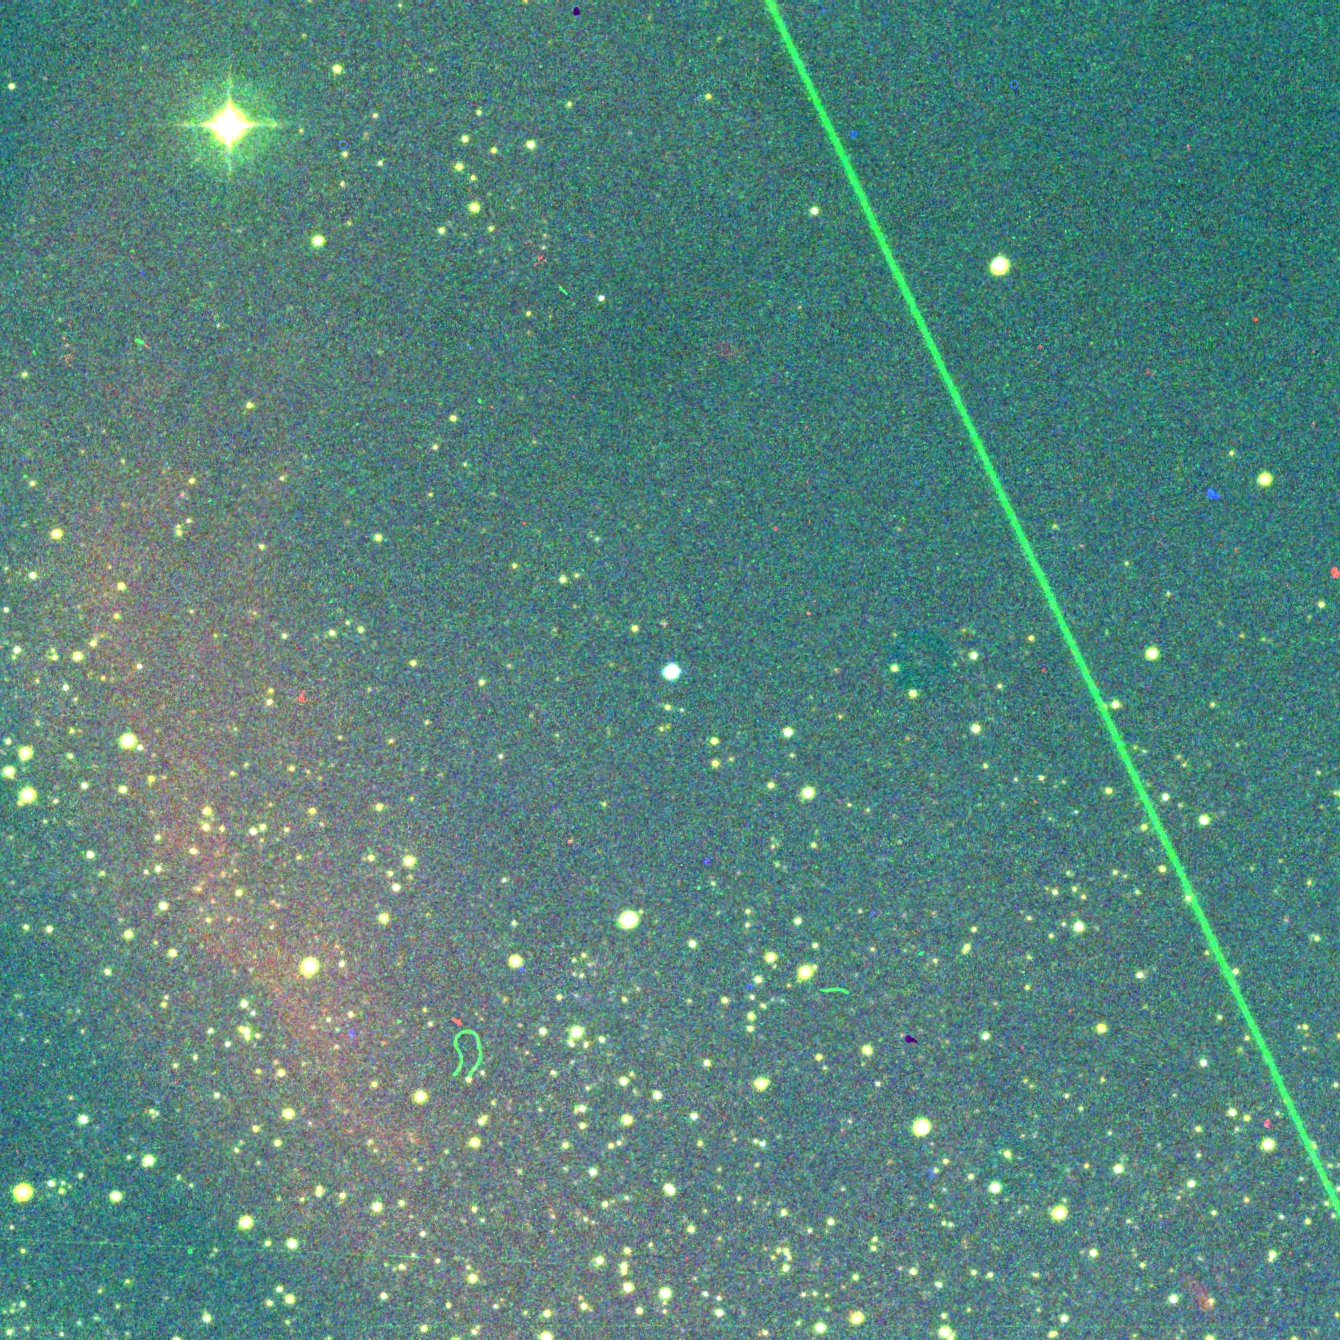 Color image of PN G026.9+04.4